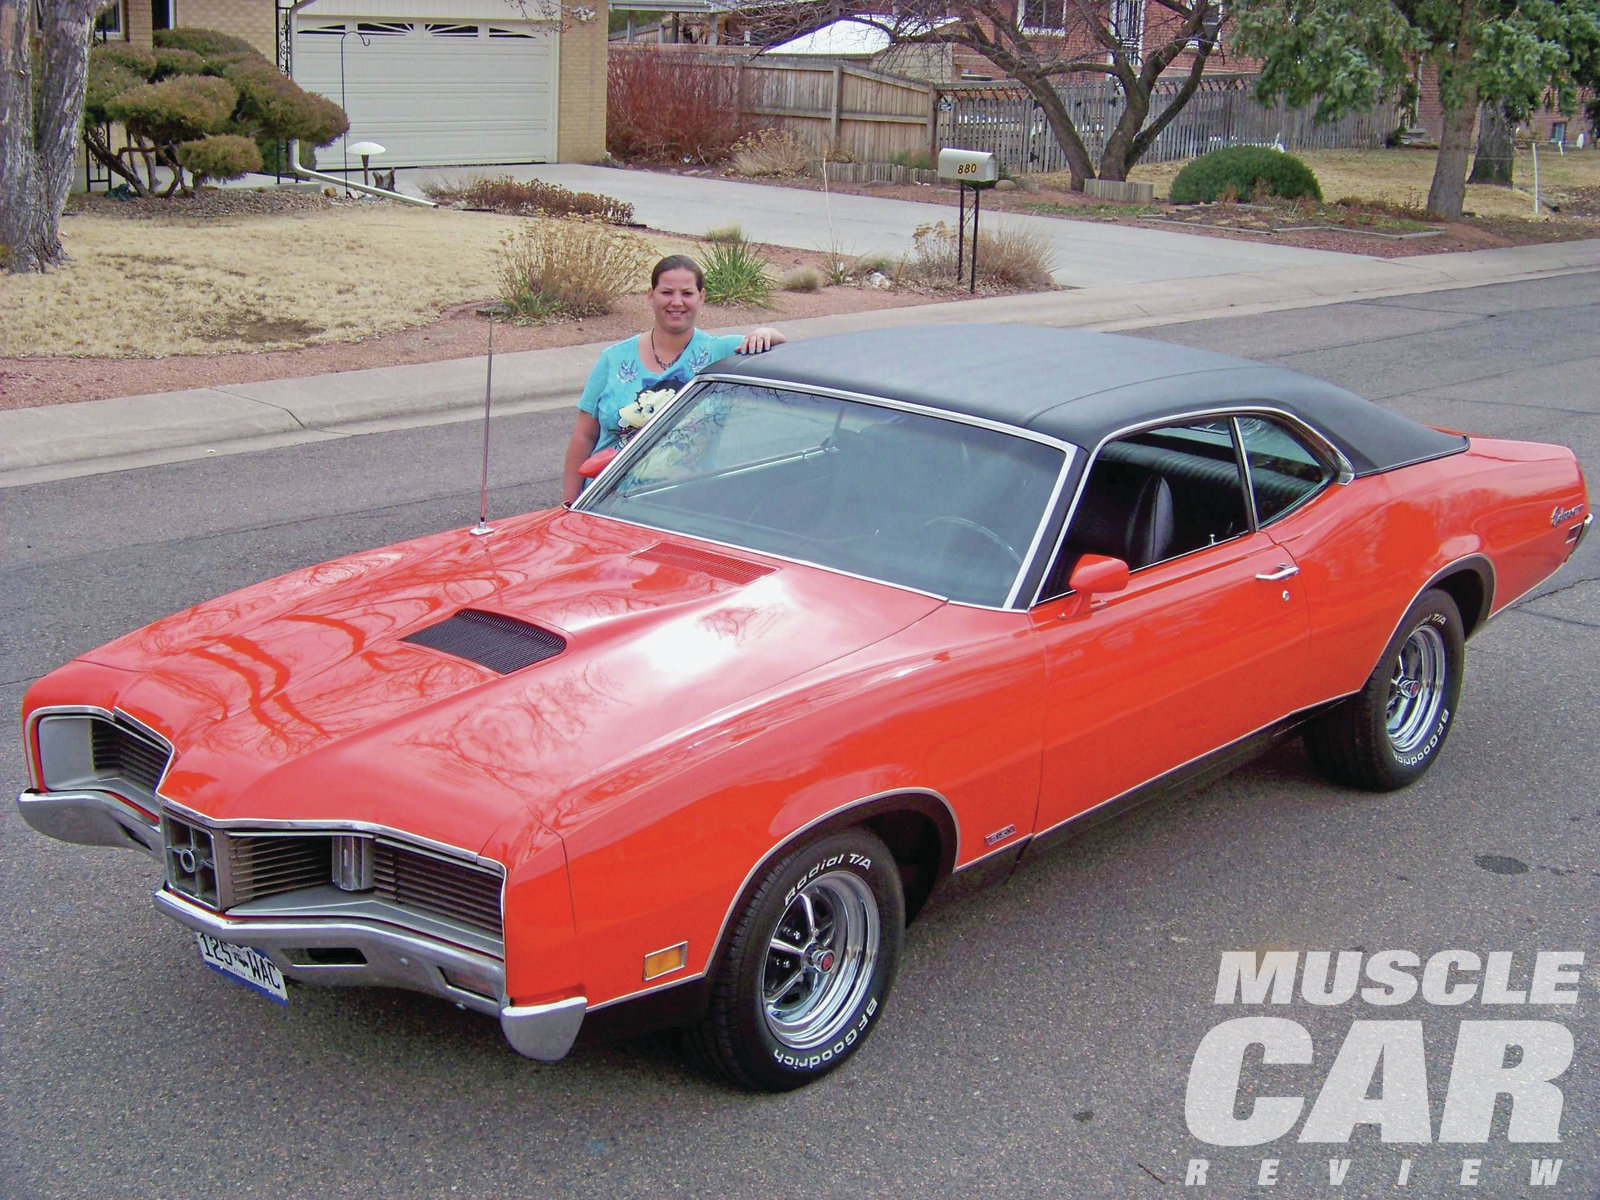 1970-mercury-cyclone-gt-front-driver-side-with-owener-lisa-tomlinson.jpg